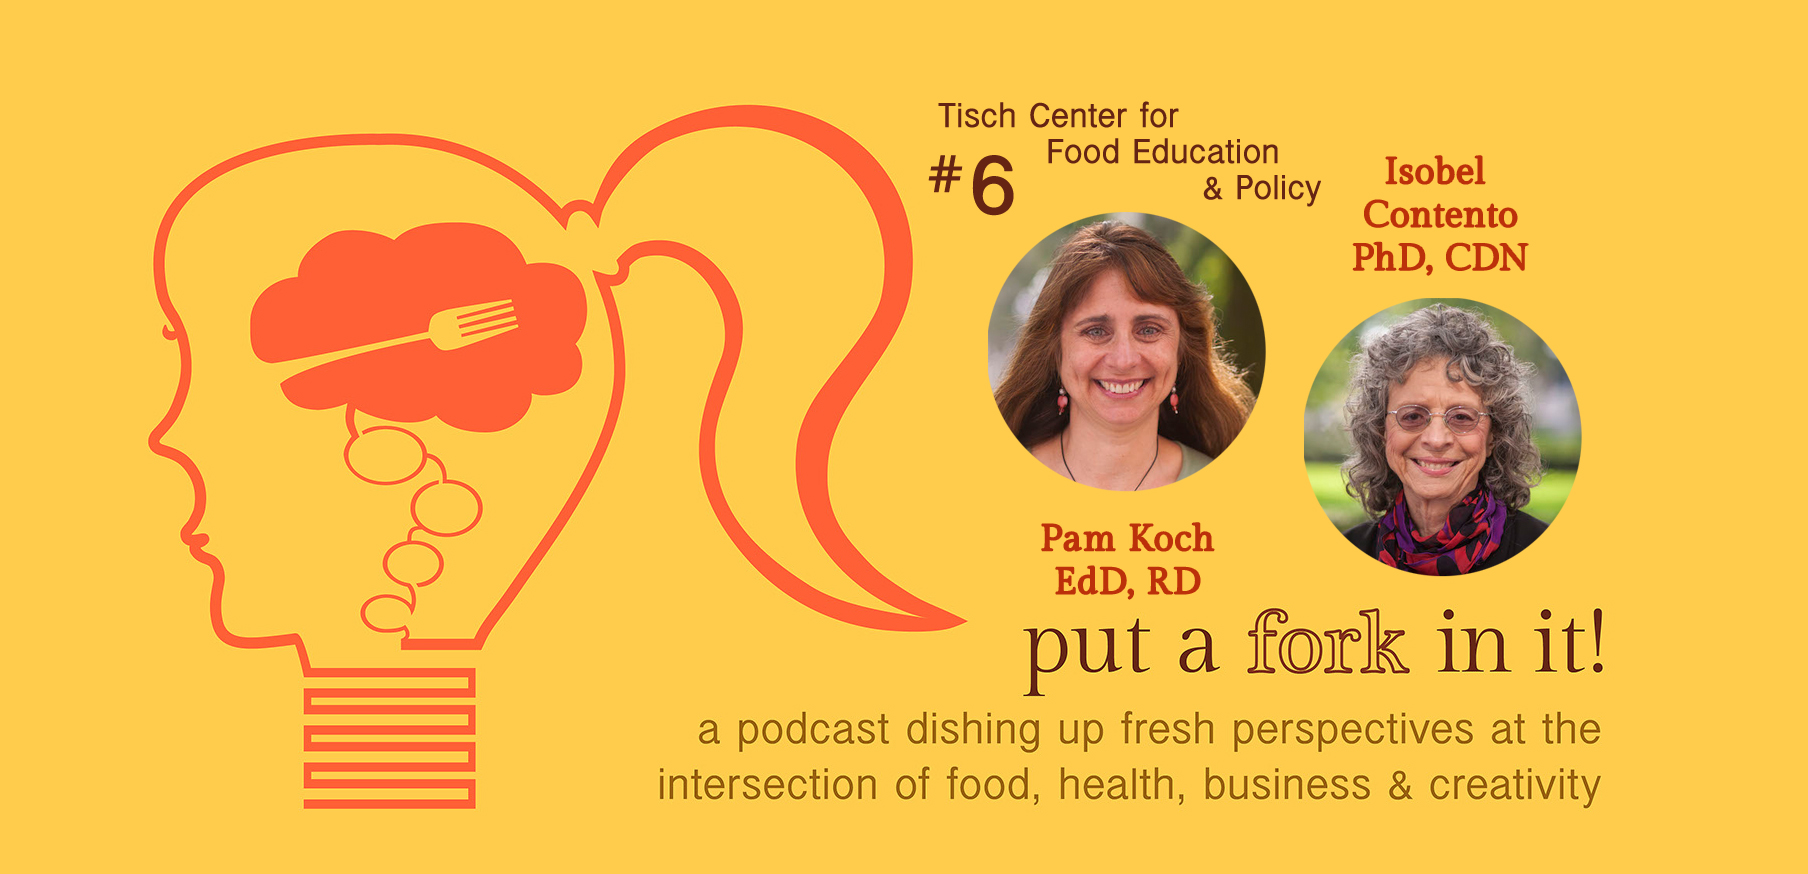 PAFII Episode 6: Pamela Koch and Isobel Contento, Tisch Center for Food, Education and Policy on Nutrition Education